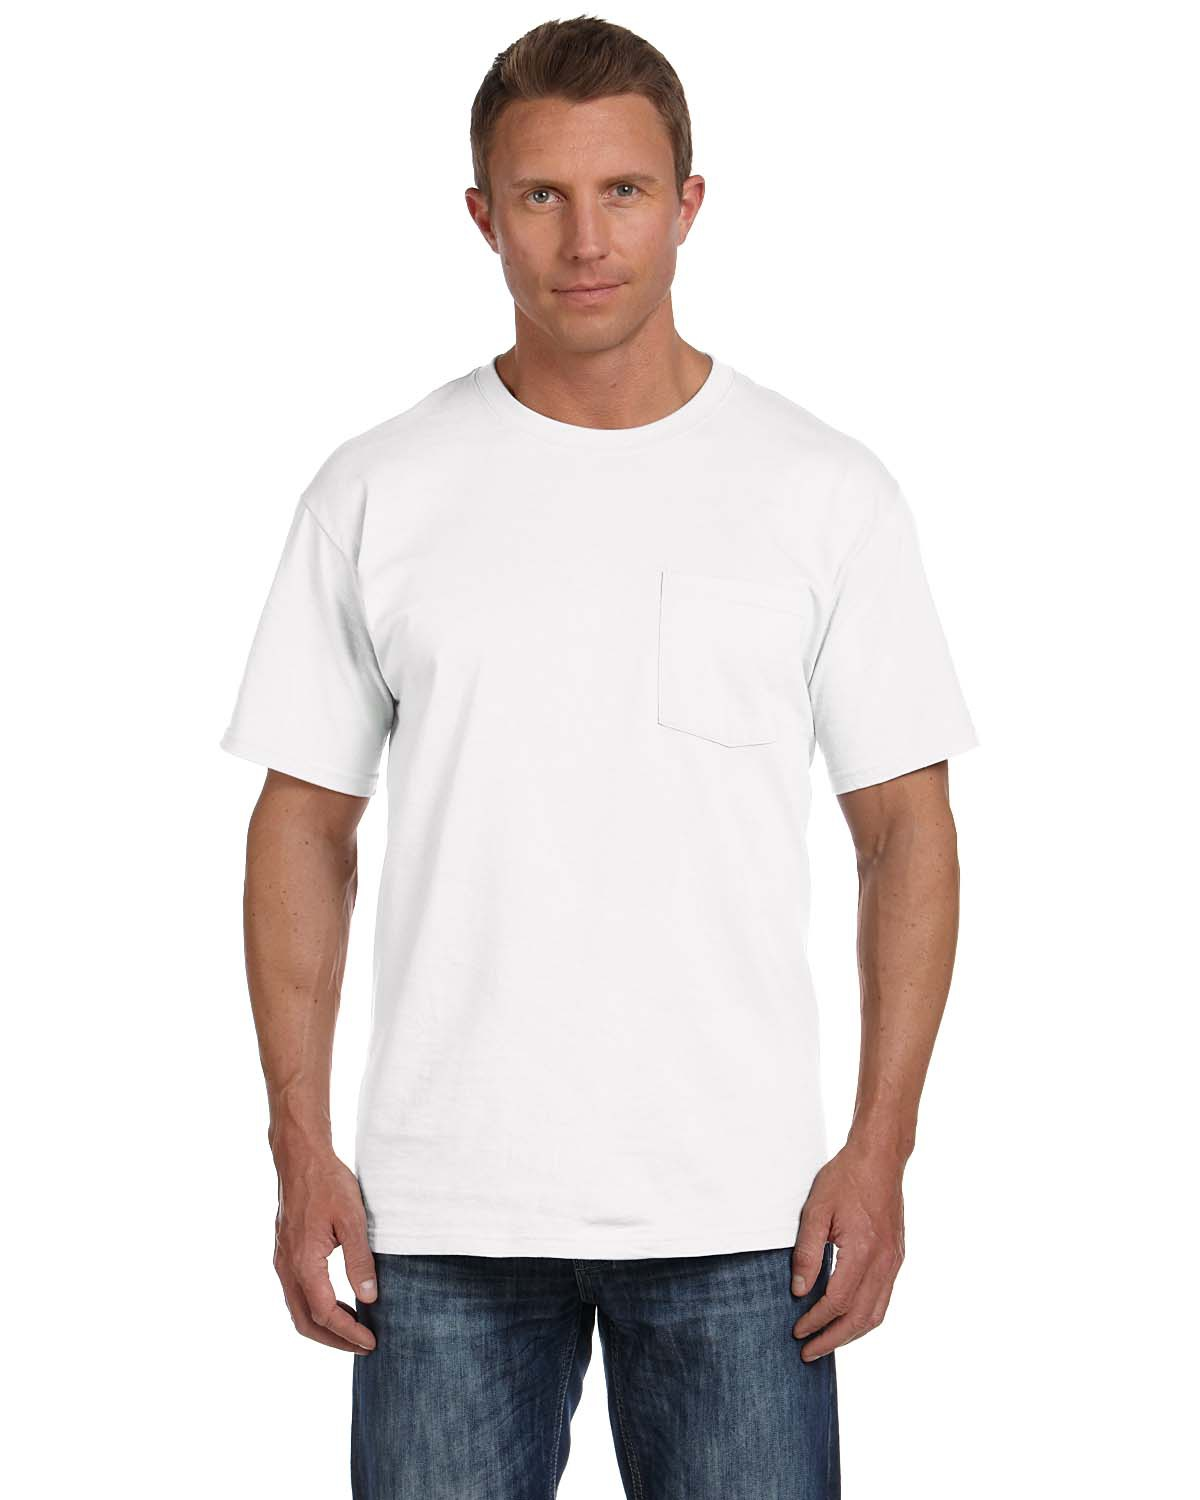 'Fruit of the Loom 3931P Adult Pocket HD Cotton T-Shirt'